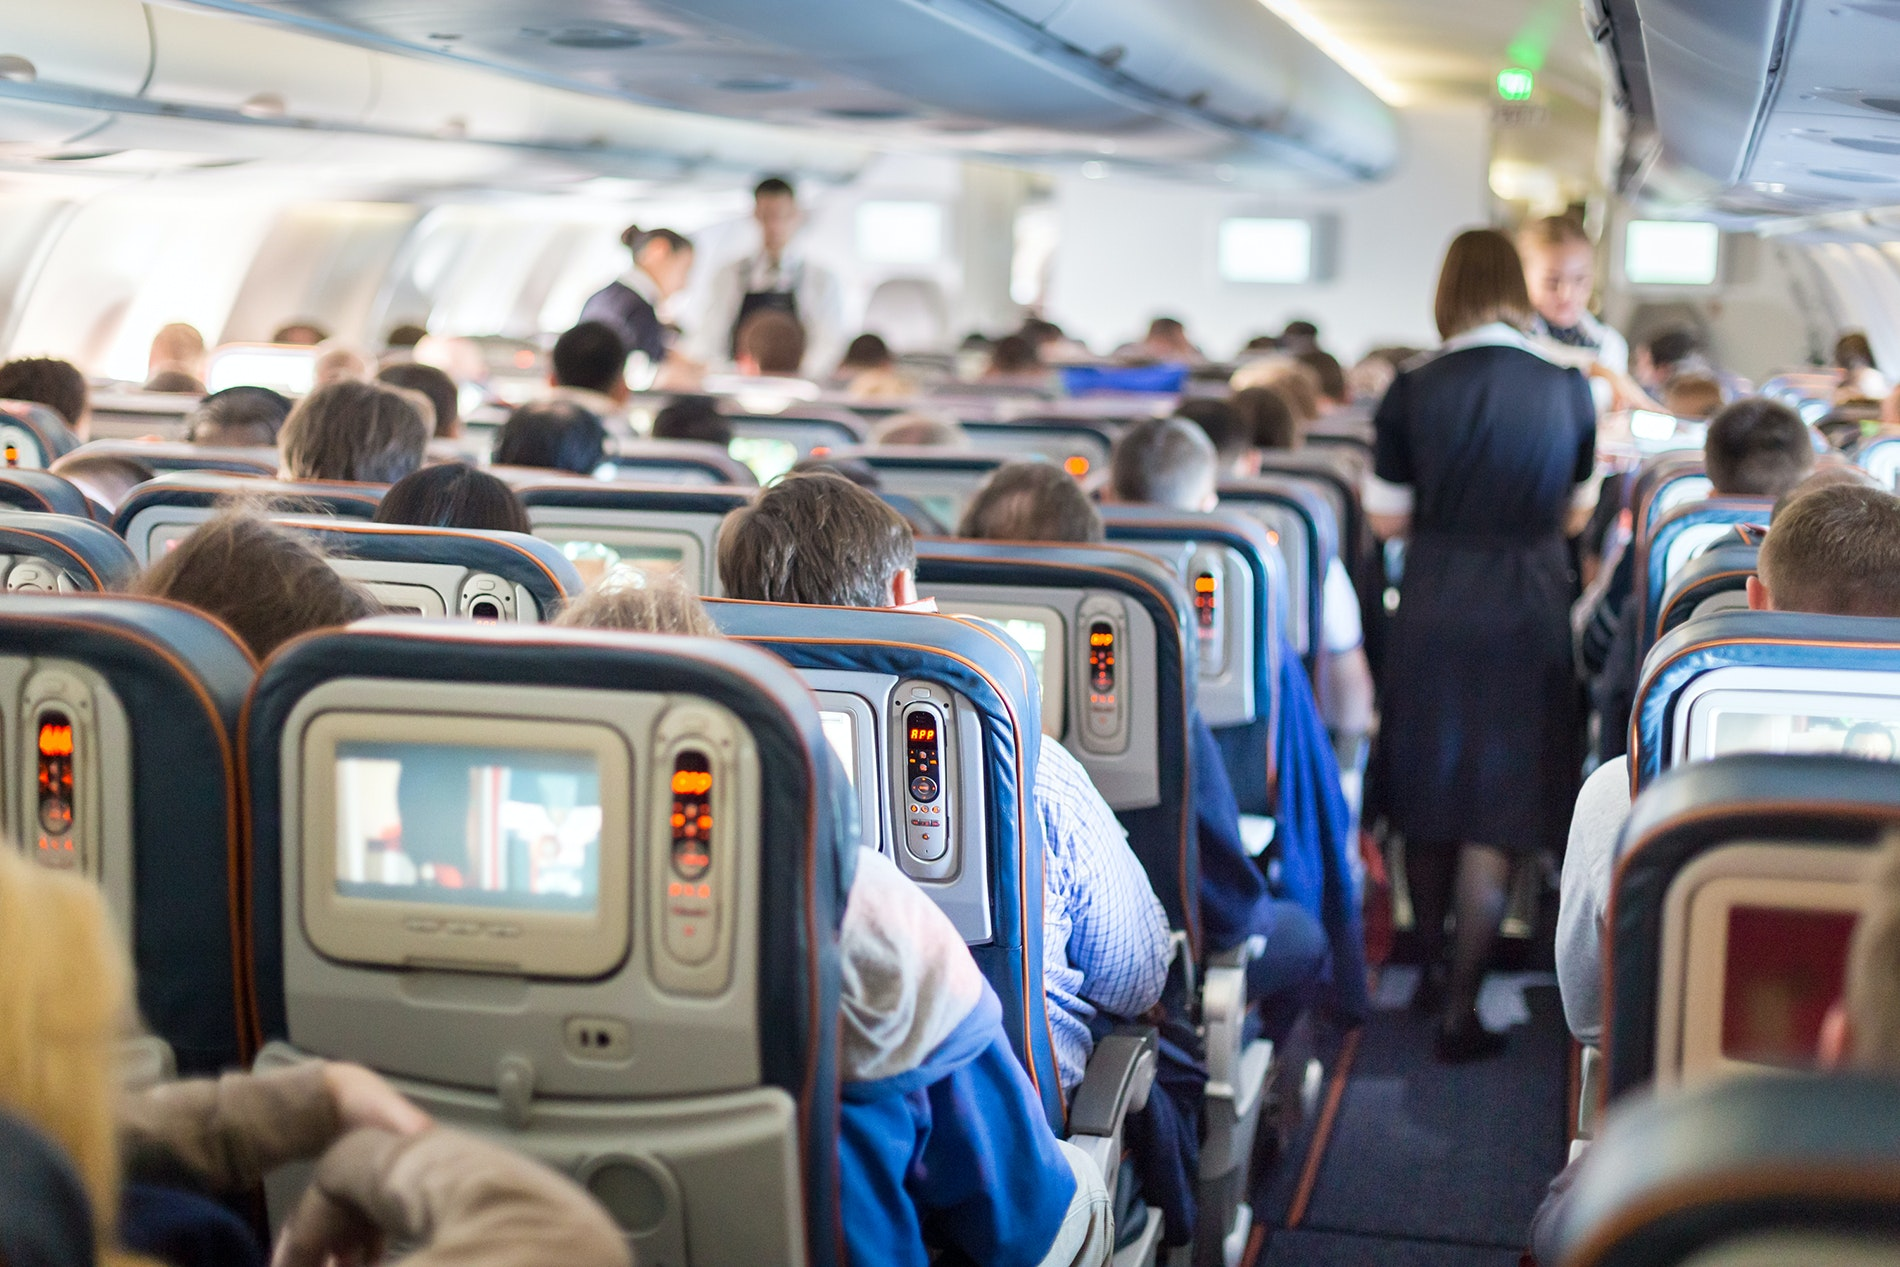 Flights might look empty on a seat map, but that's not always the best indication of how many tickets are left.